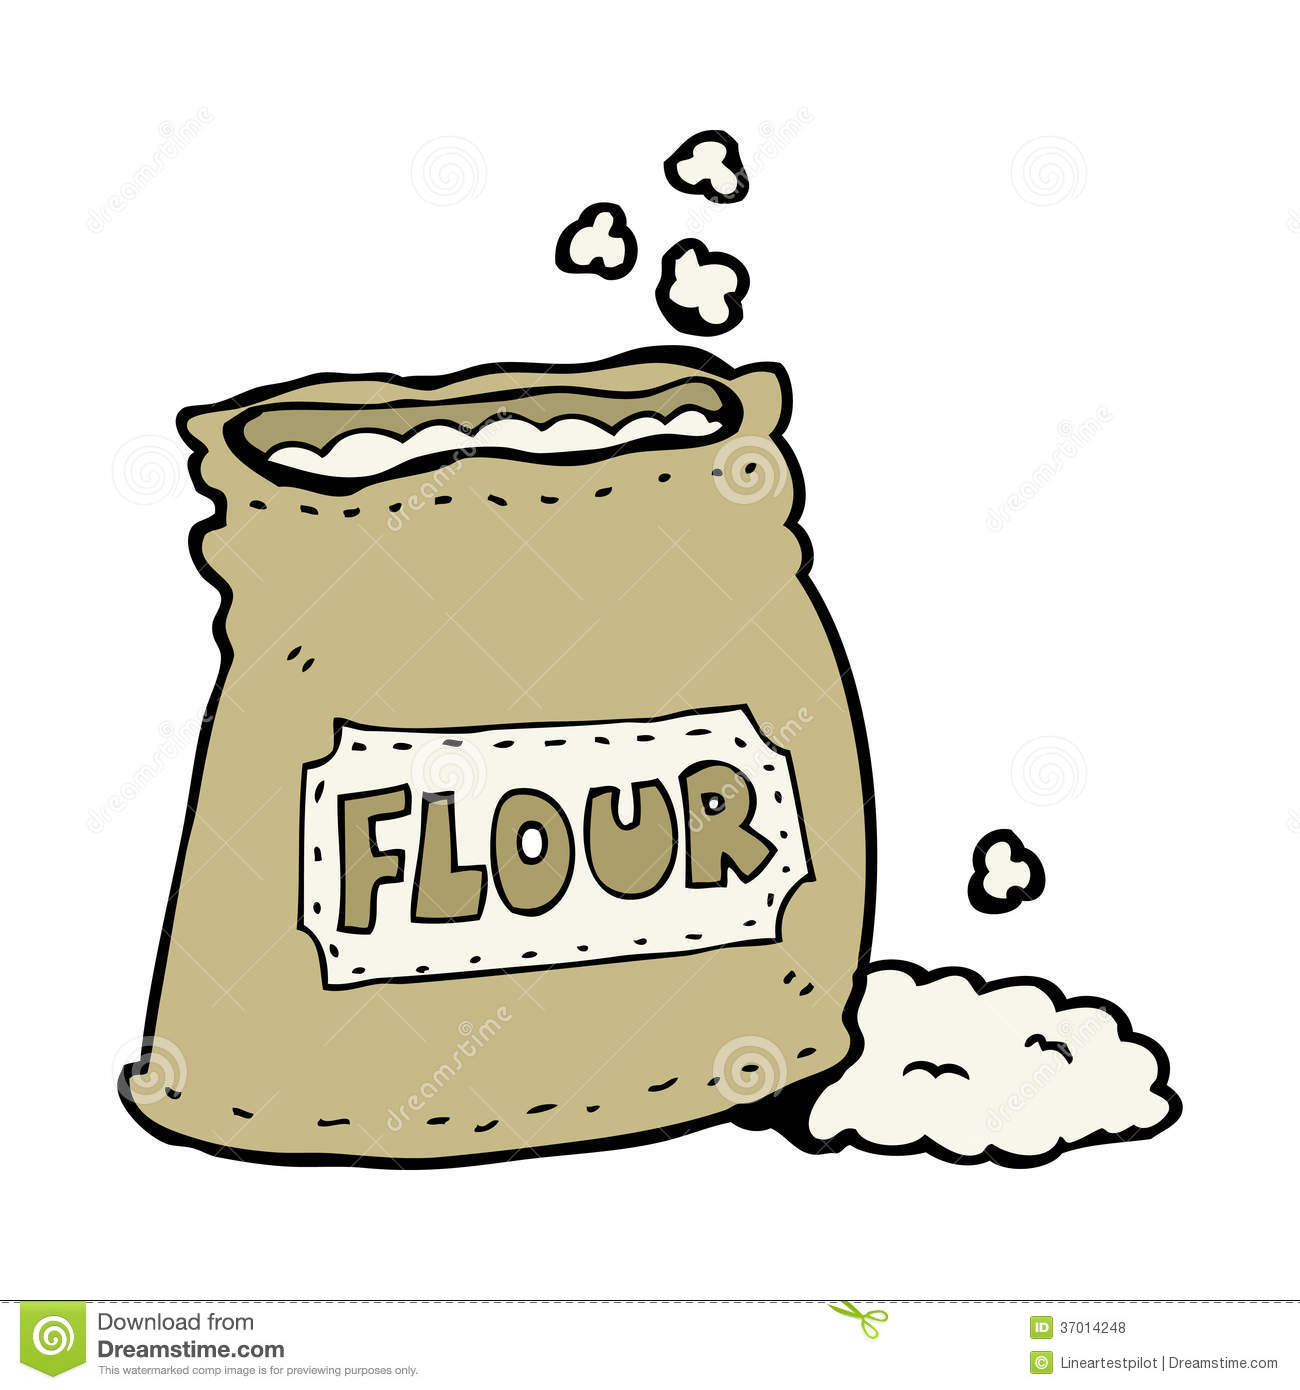 Flour Clipart; Flour Clipart; Flour Clipart; Flour Clipart